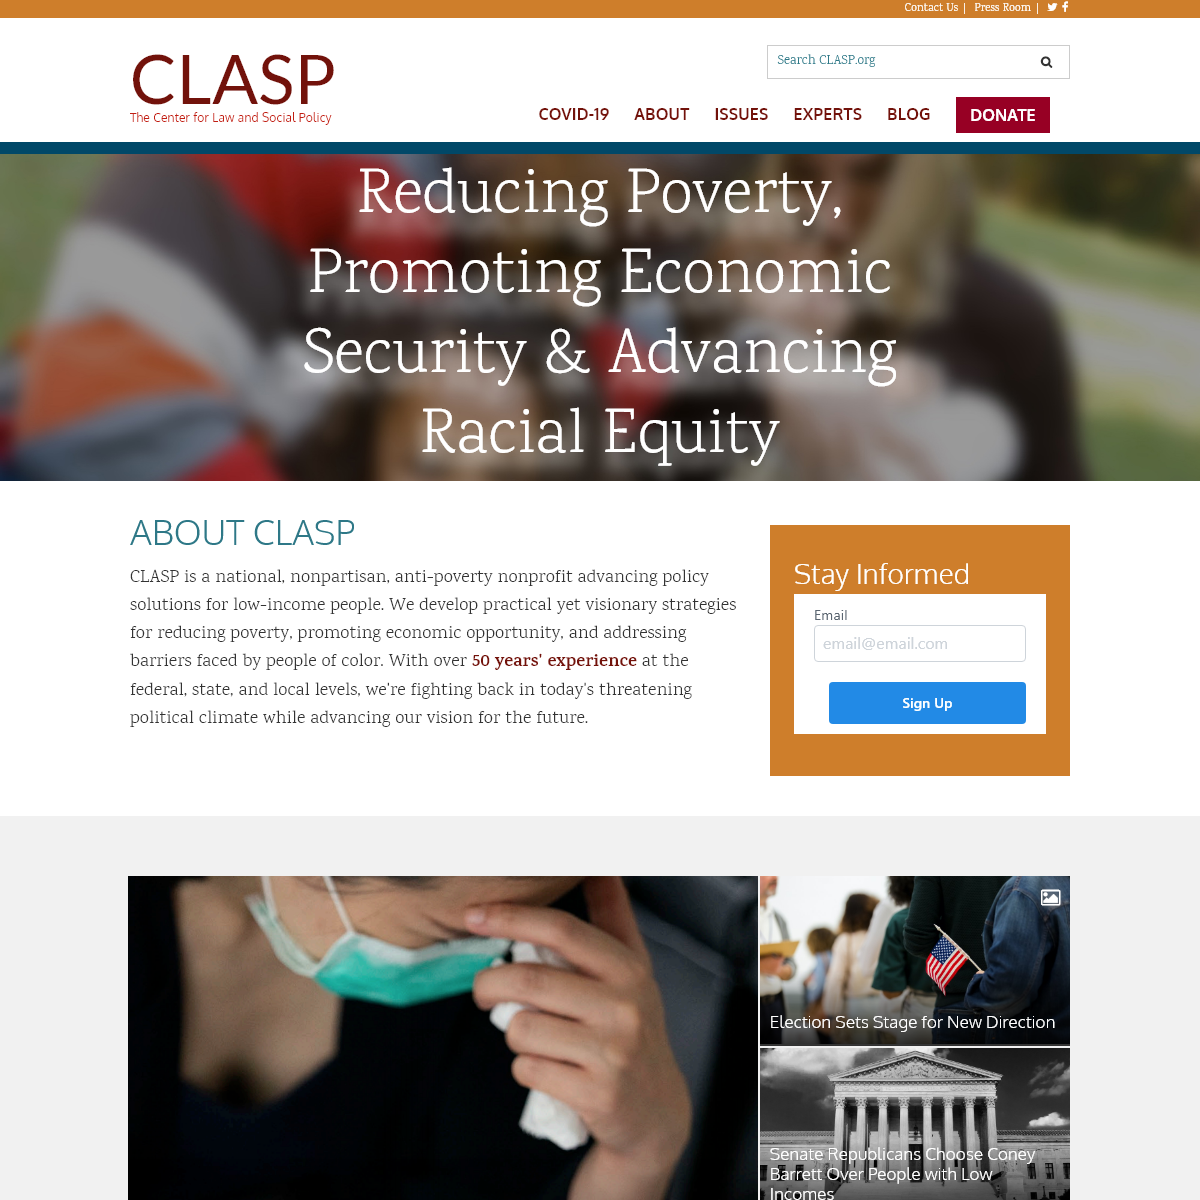 CLASP - The Center for Law and Social Policy